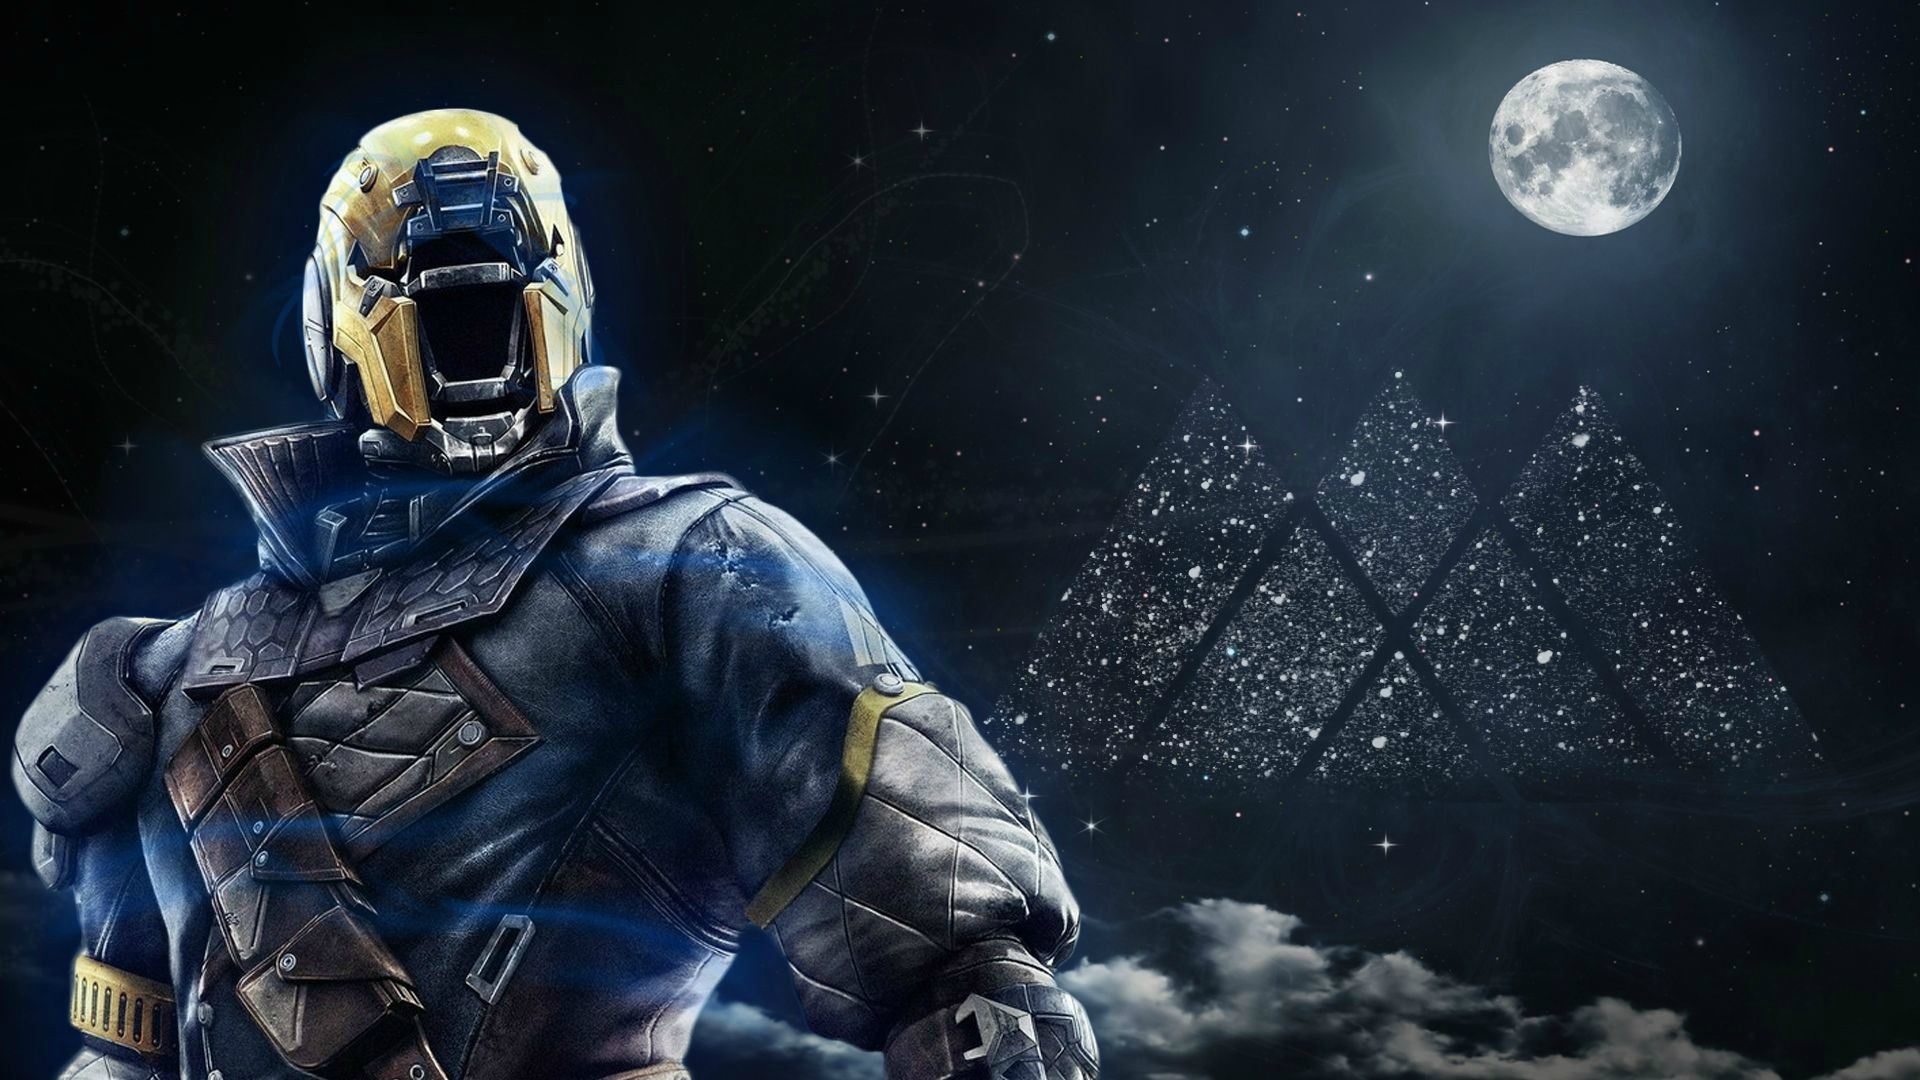 Group Of Destiny Desktop Wallpaper Or